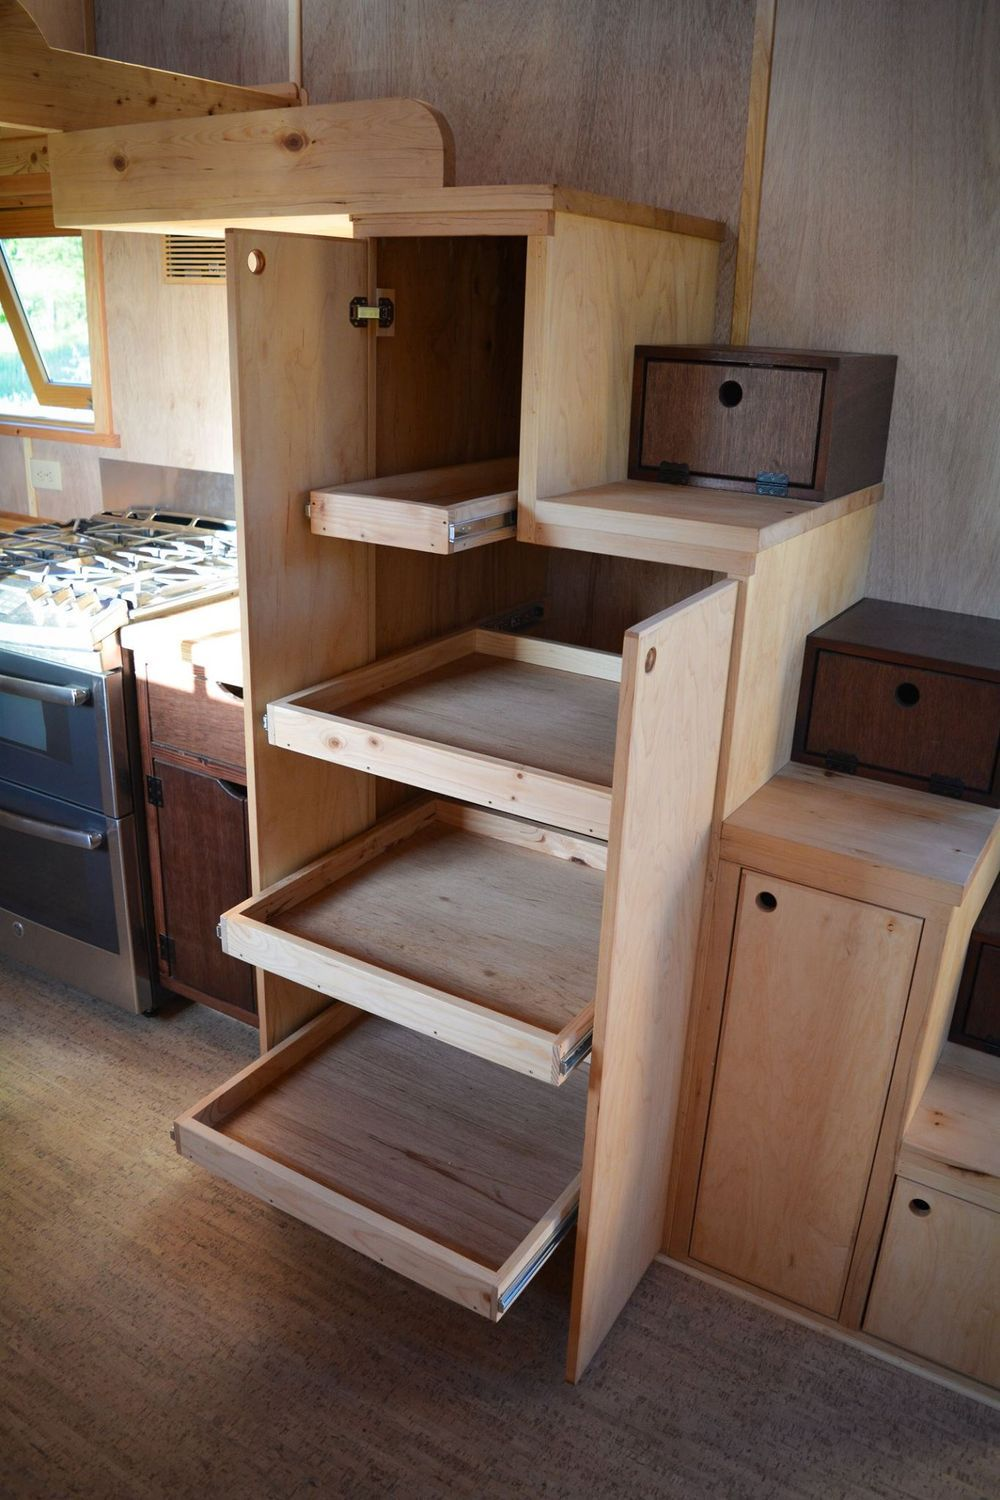 Extra Kitchen Storage New Tiny House Lives Large With Extra High Ceiling And Fun Curves